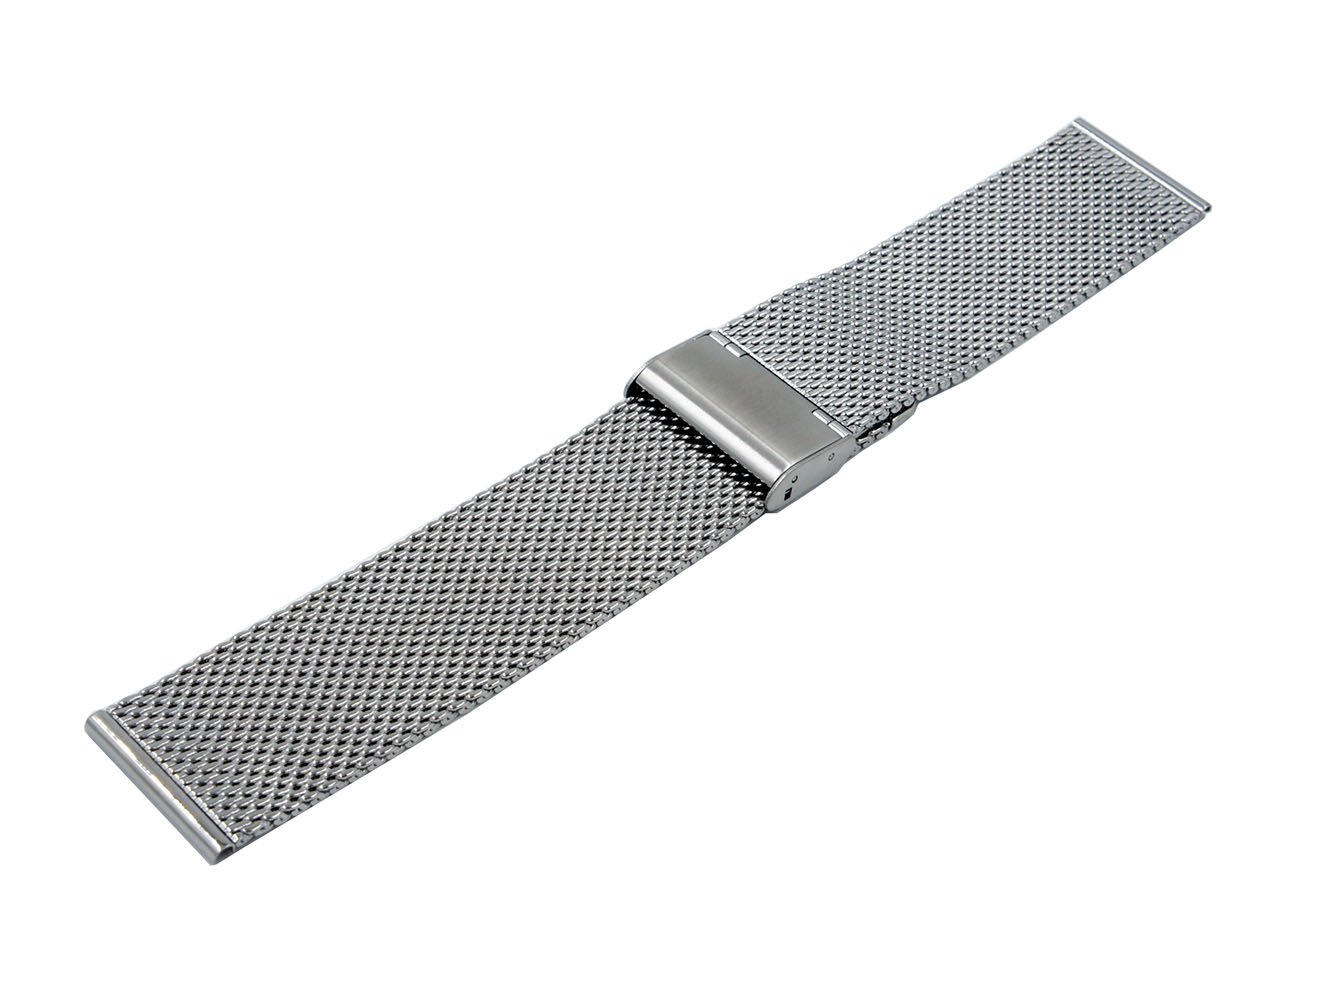 Amazon.com: 24mm Stainless Steel Milanese Metal Watch Band ...